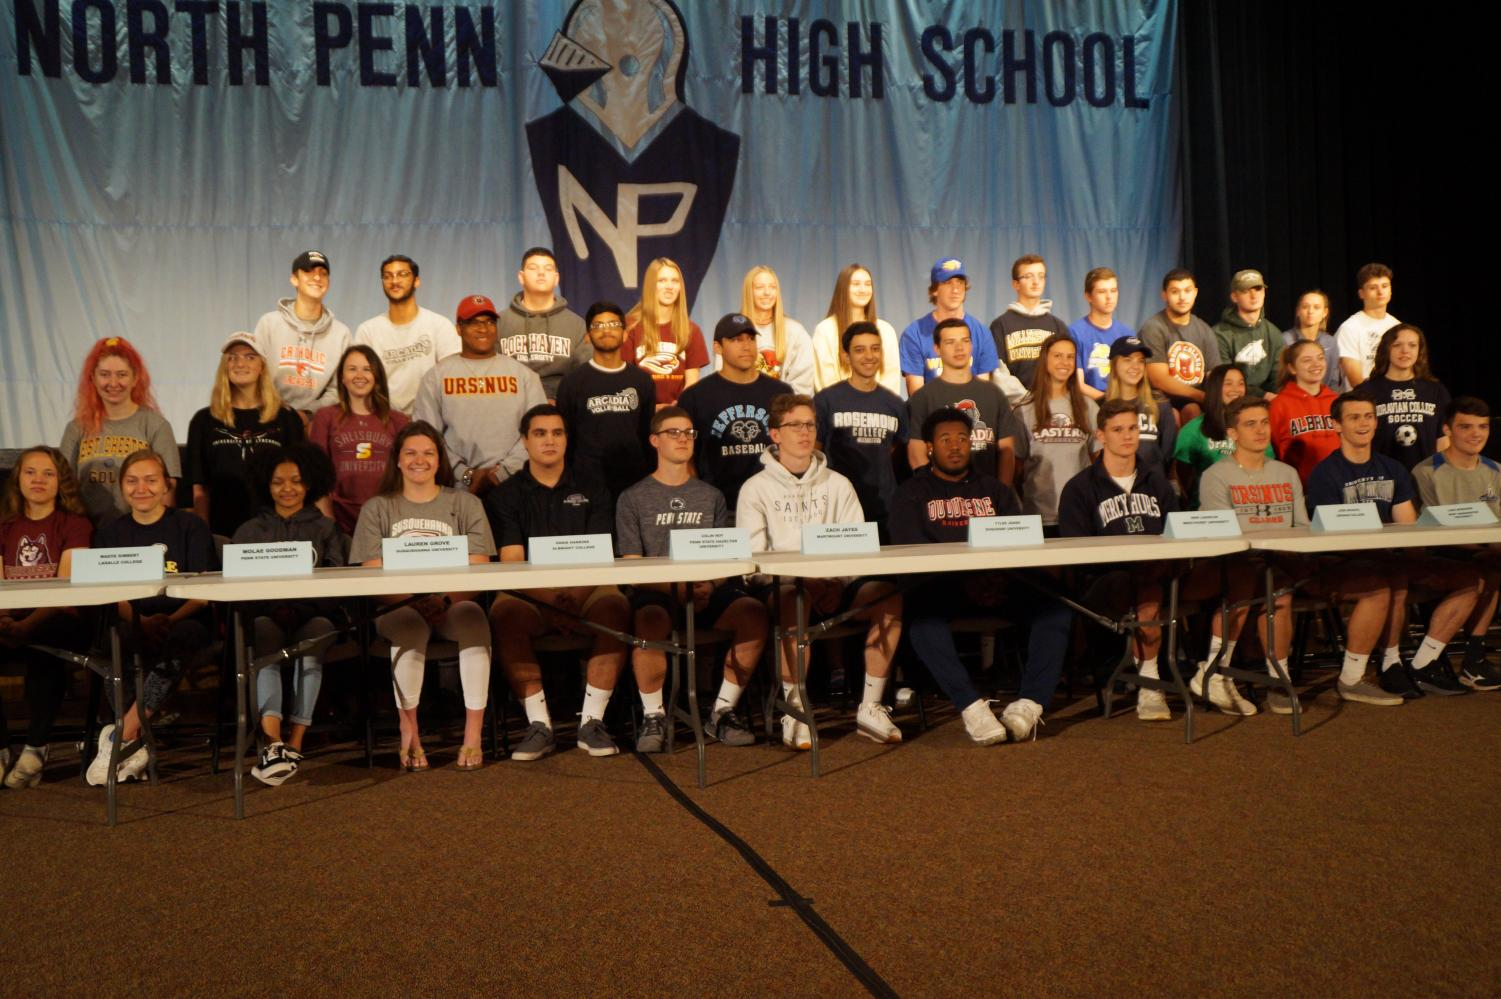 North Penn recognized student athletes that will continue their academic and athletic careers at the collegiate level.